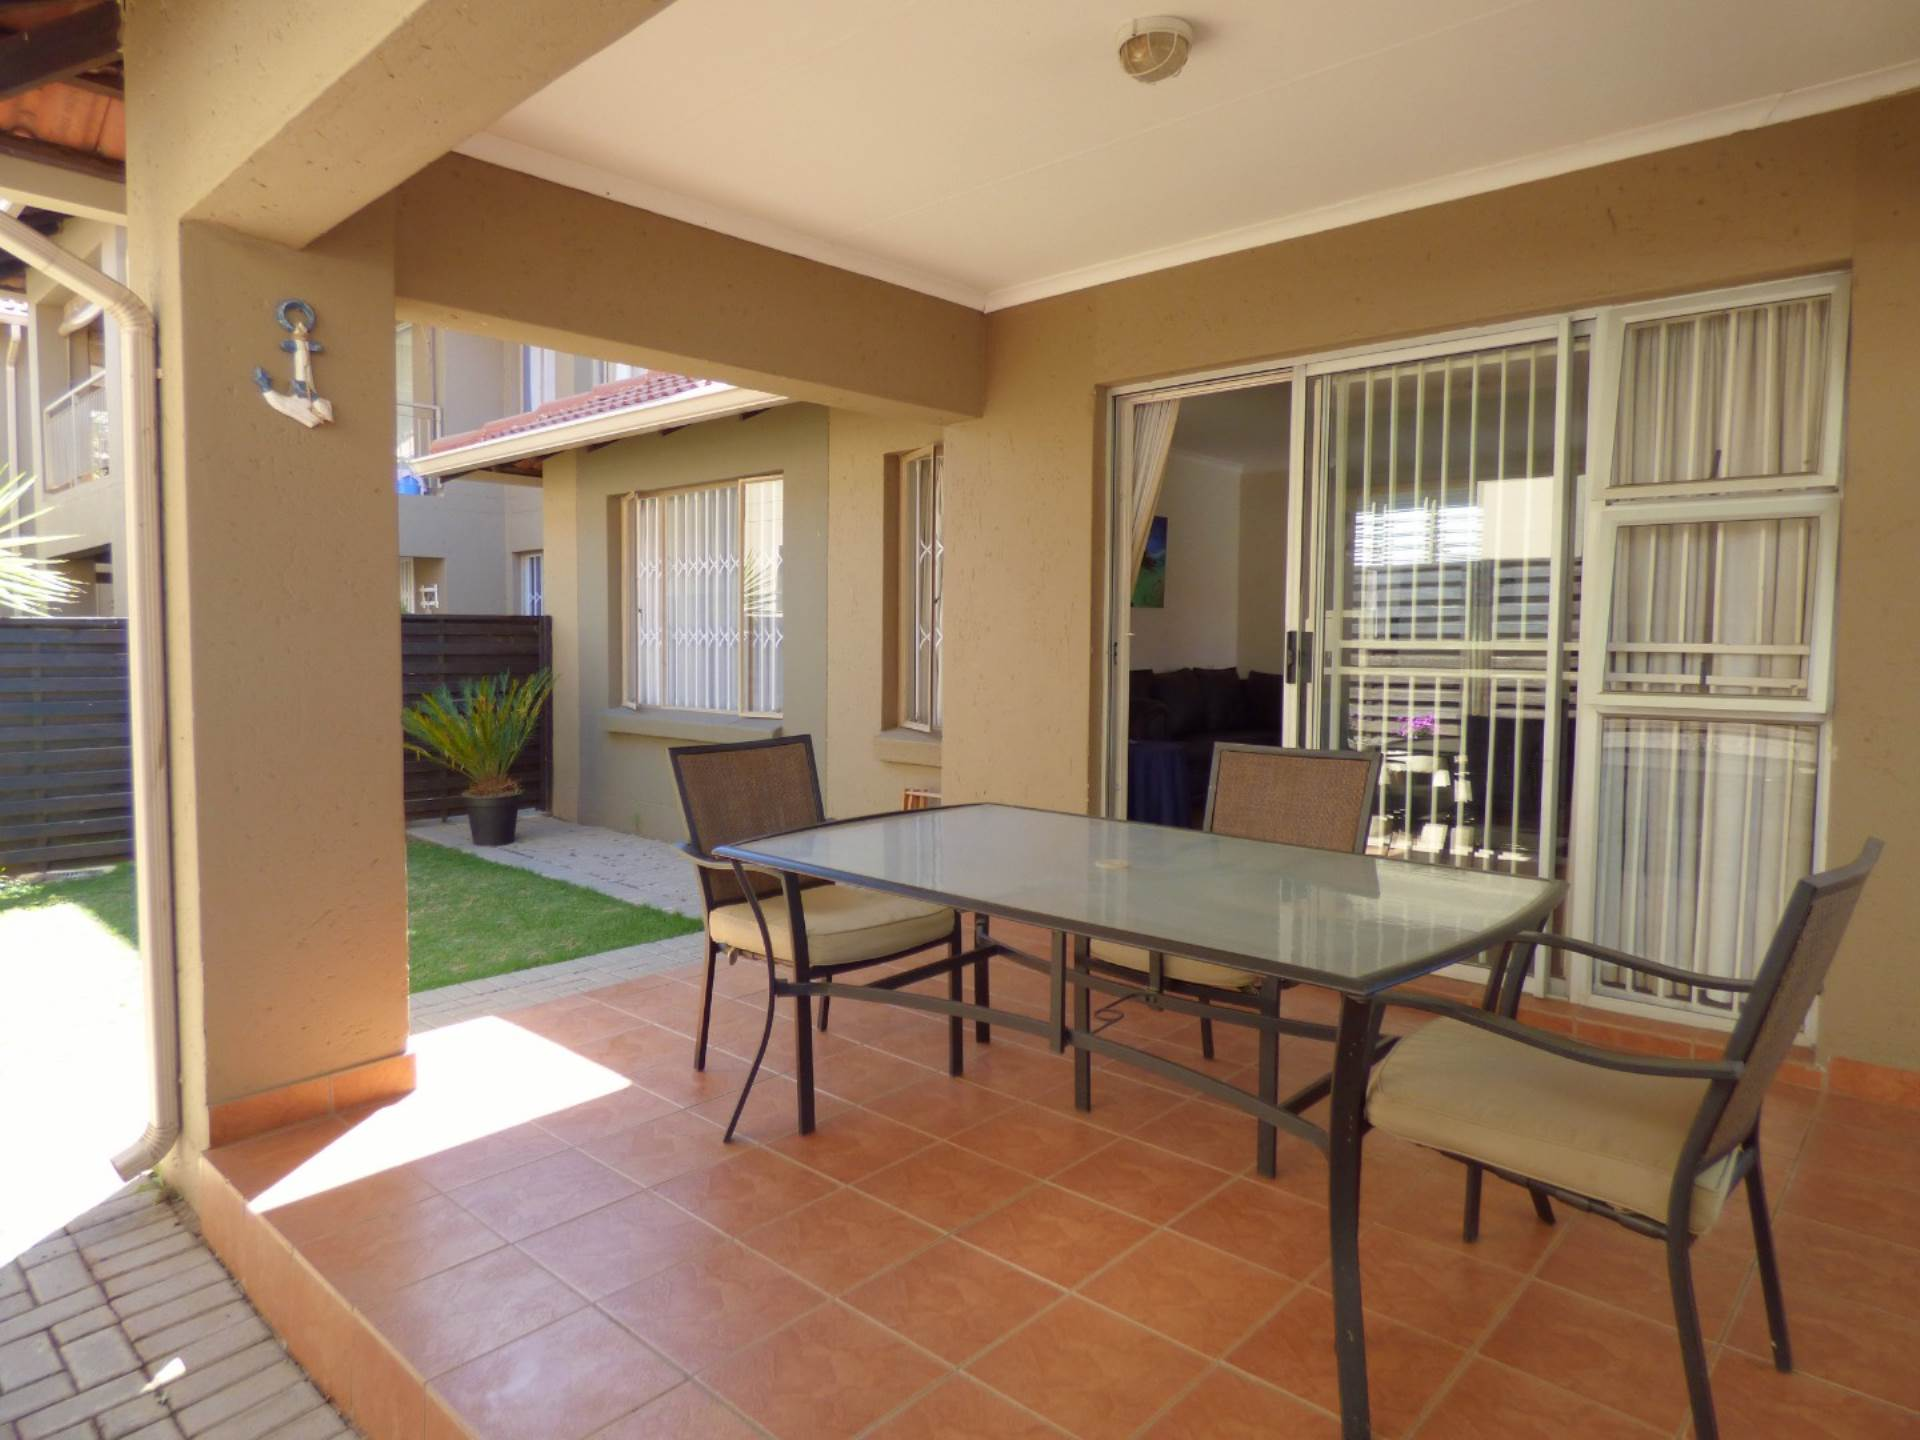 2 BedroomTownhouse For Sale In Rynfield